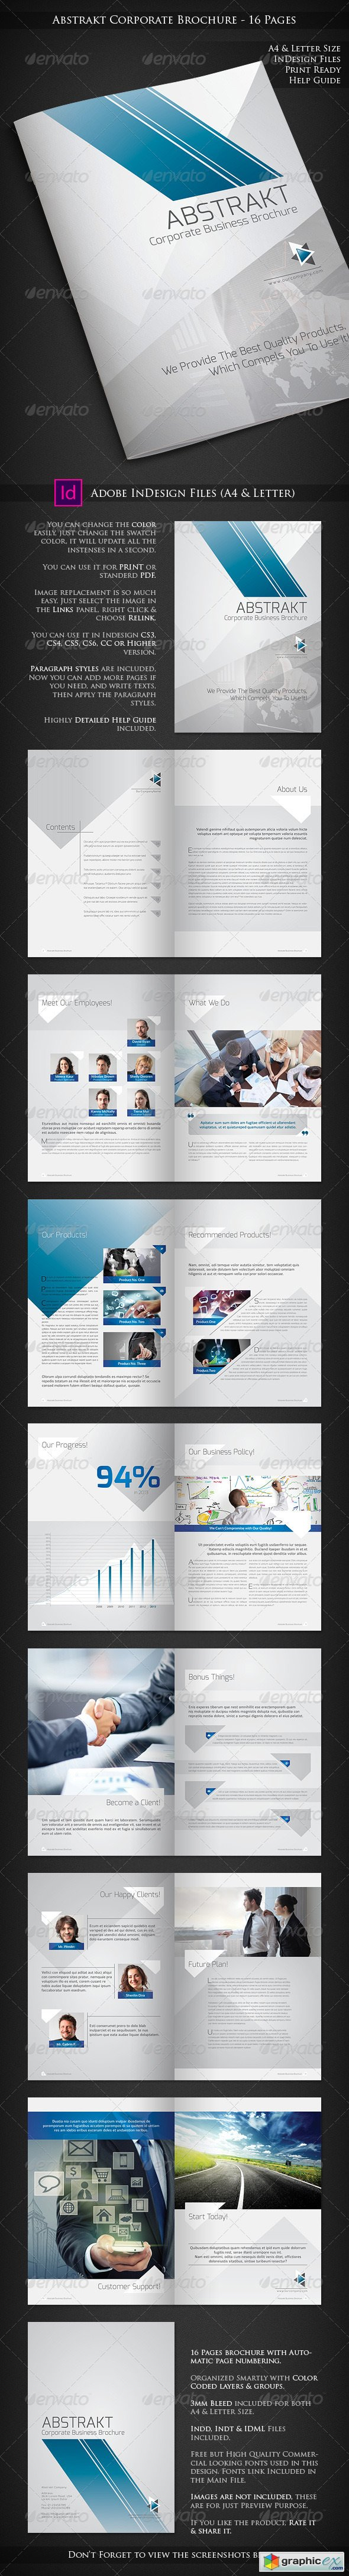 Abstrakt - Corporate Brochure Design - 16 Pages